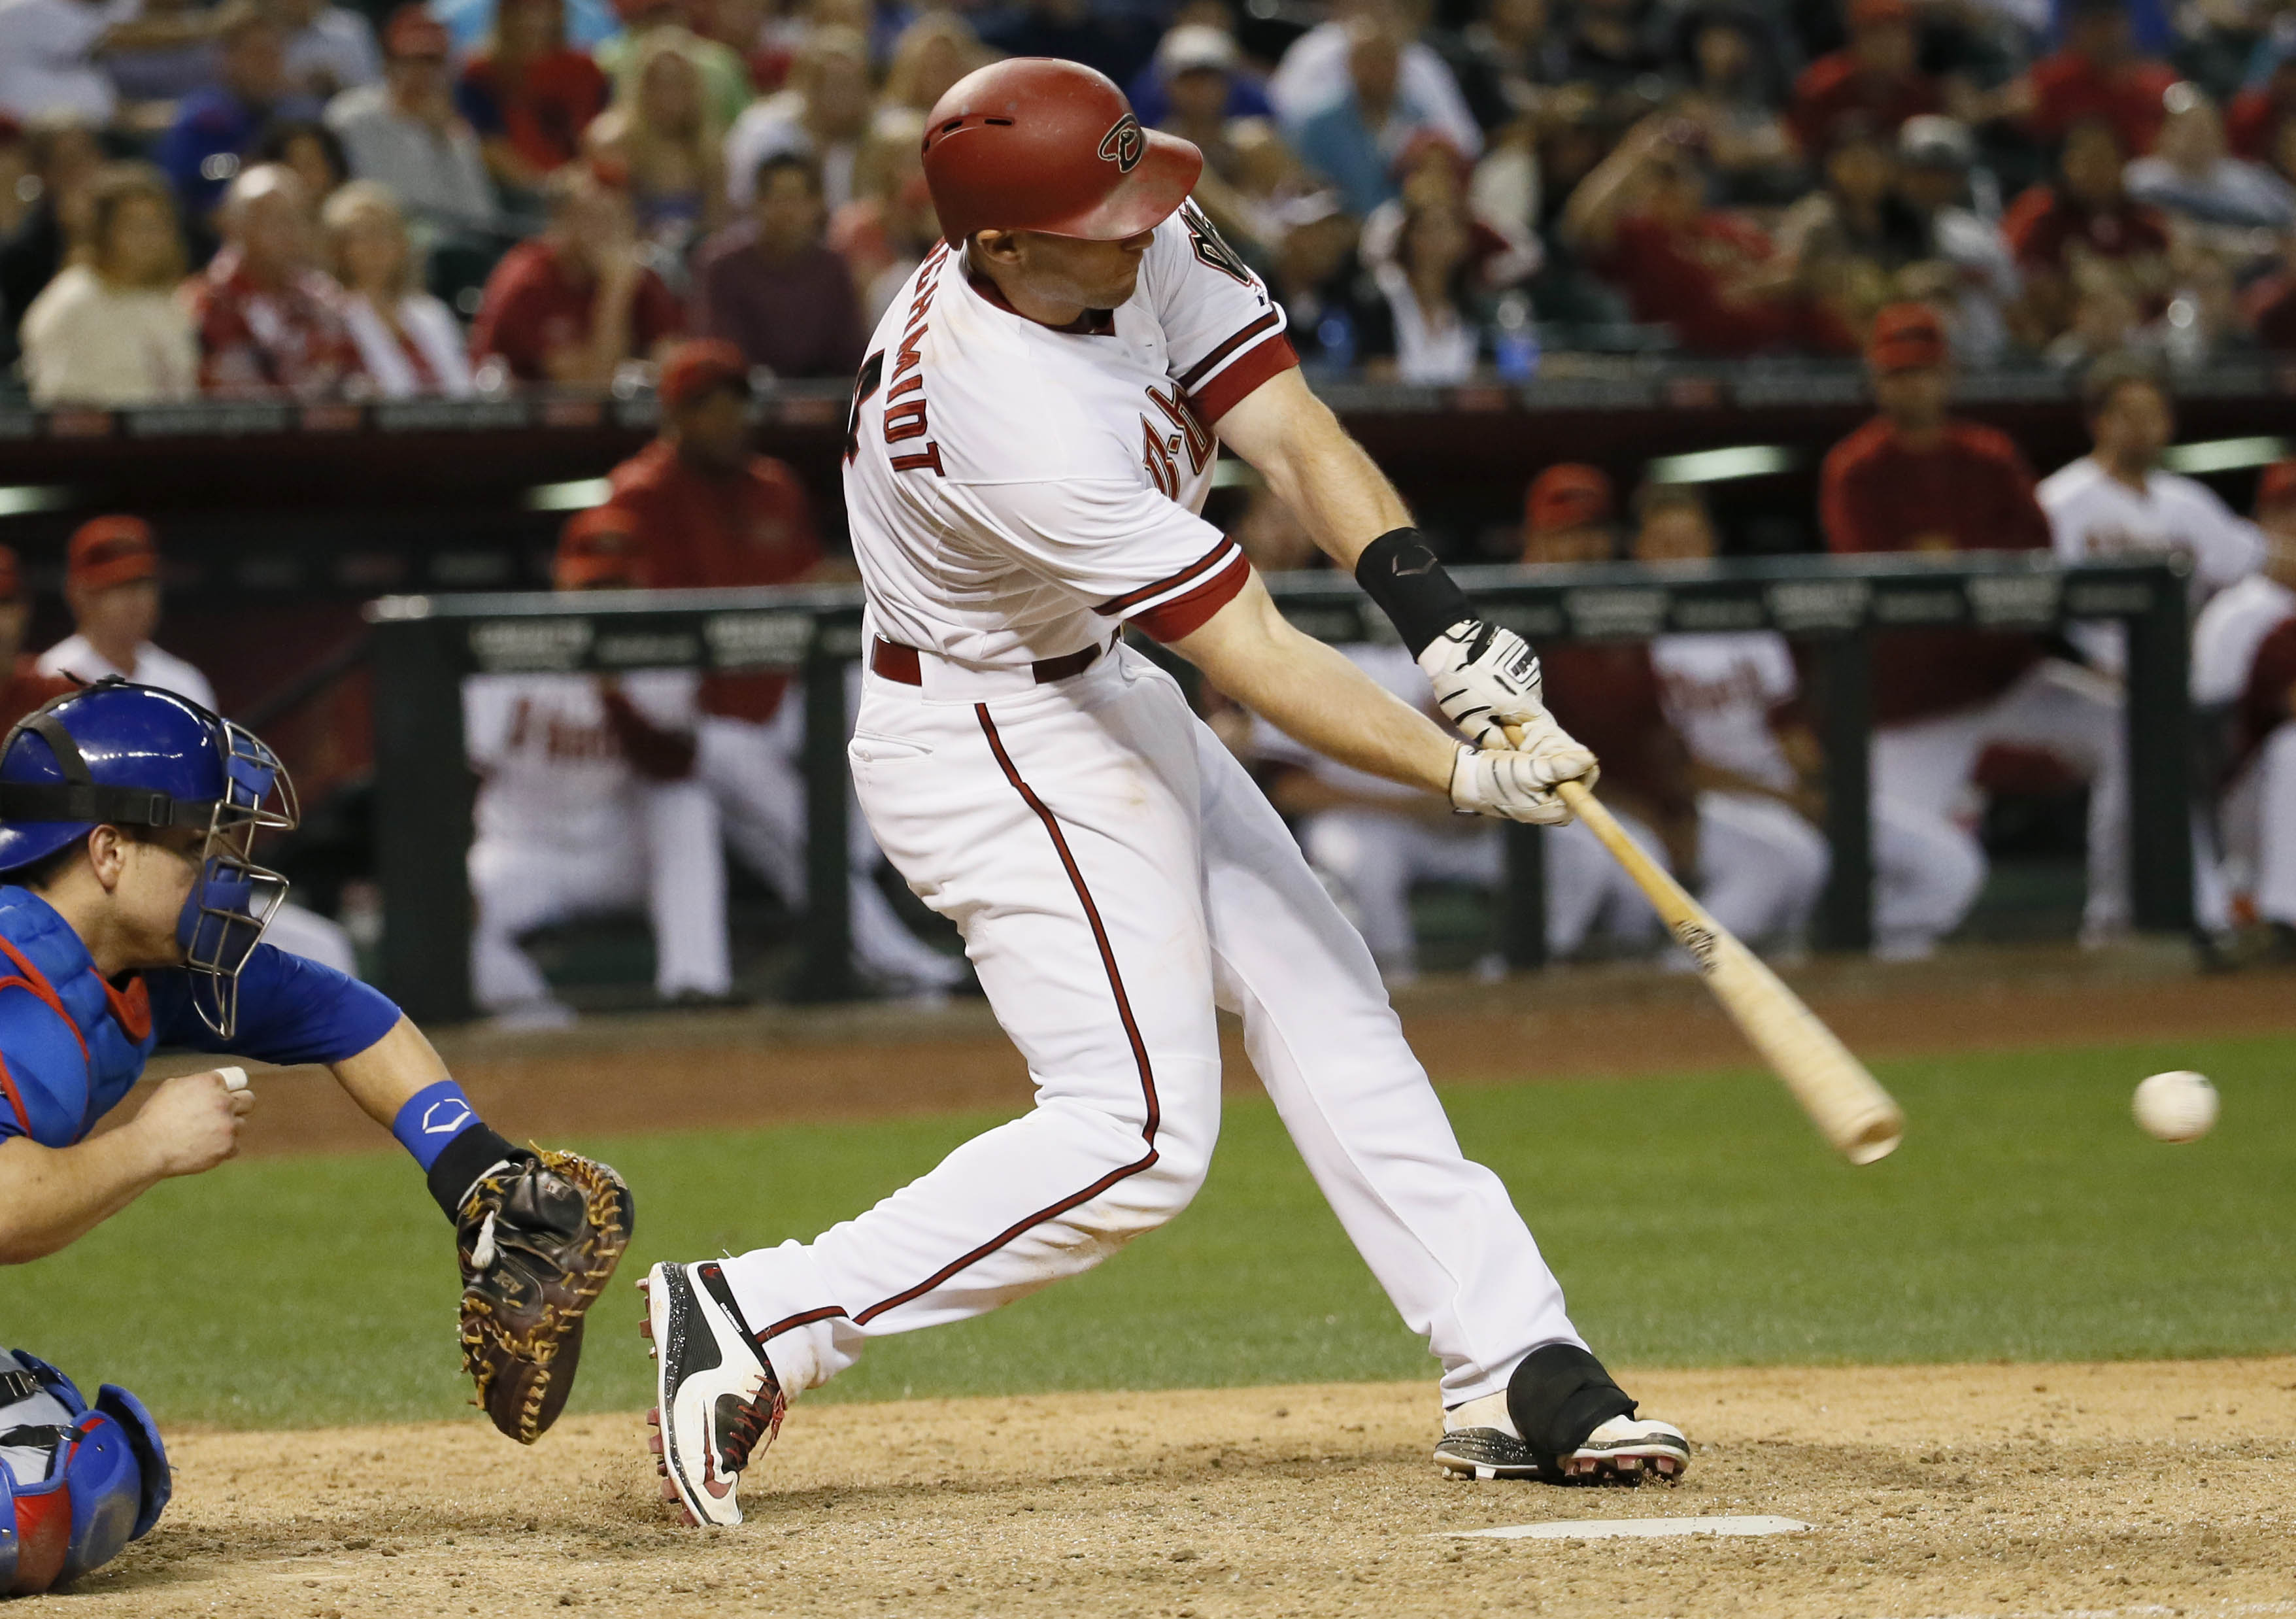 Arizona Diamondbacks Paul Goldschmidt swings on a two-run home run against the Chicago Cubs during the 10th inning of a baseball game, Friday, May 22, 2015, in Phoenix. (AP Photo/Matt York)